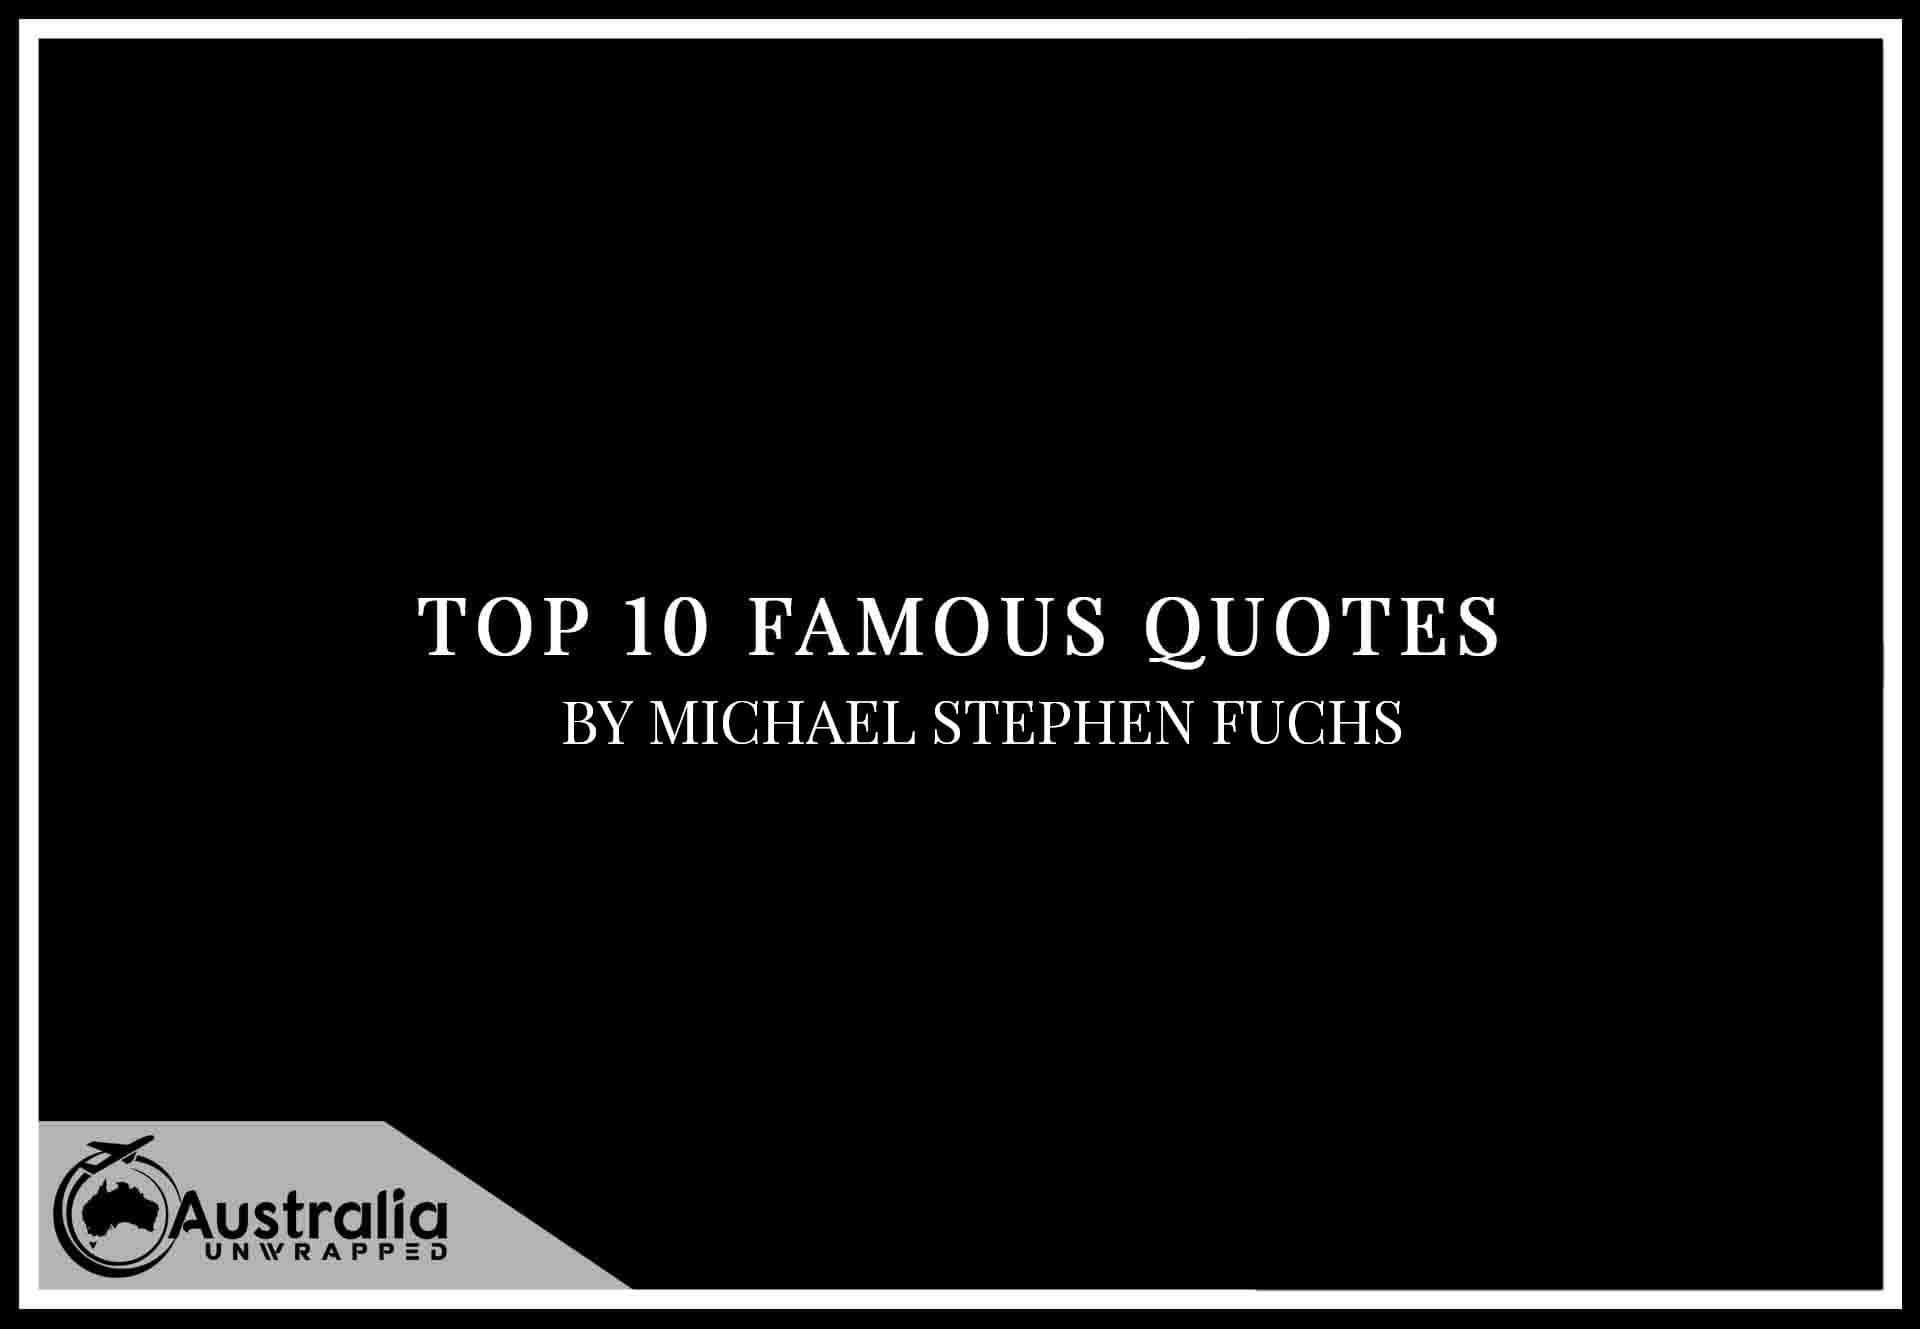 Top 10 Famous Quotes by Author Michael Stephen Fuchs